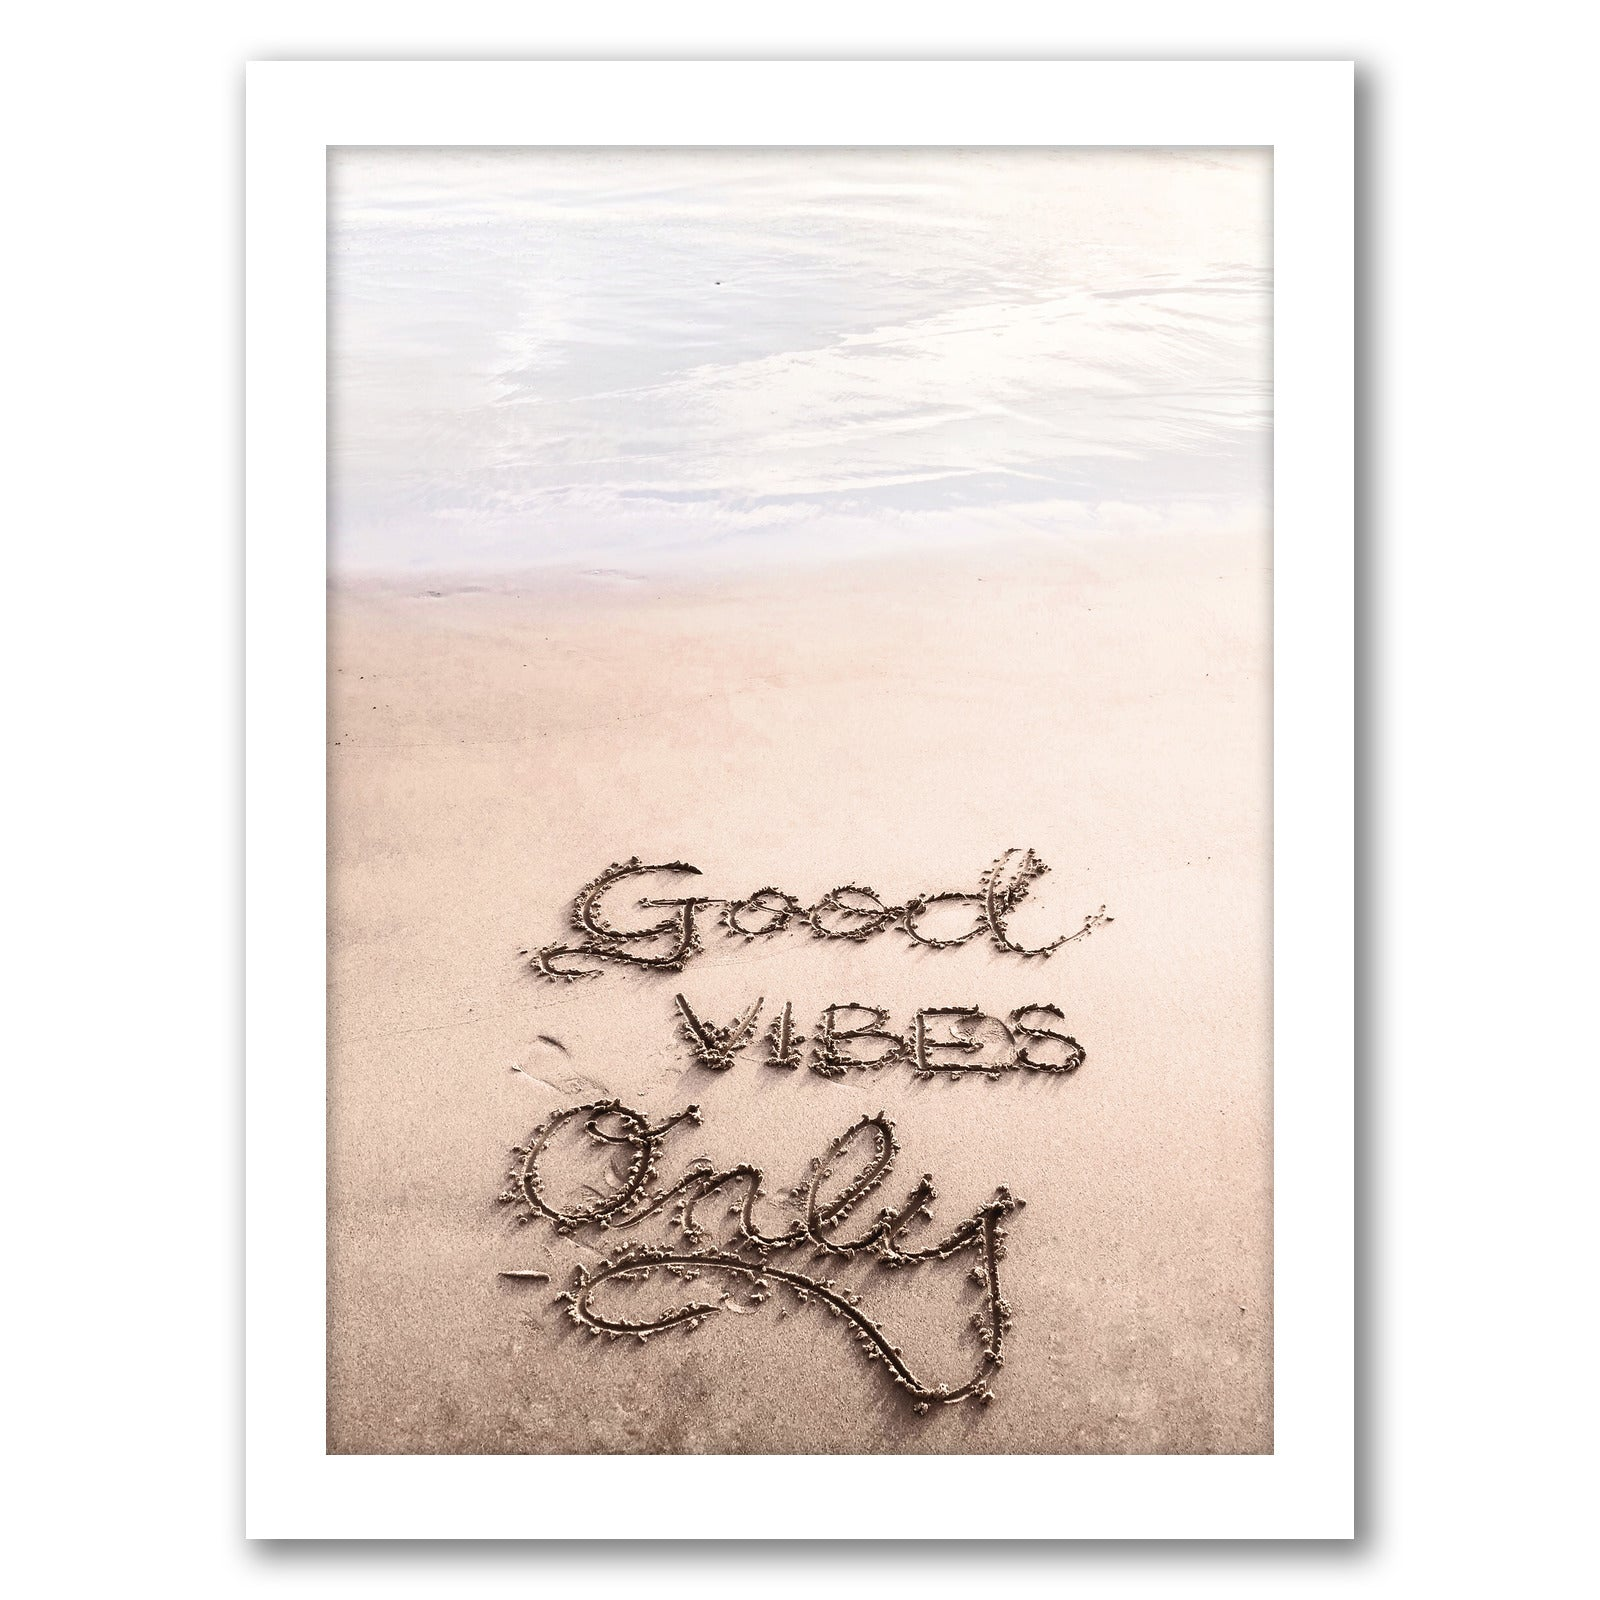 Good Vibes On The Beach by Tanya Shumkina - White Framed Print - Wall Art - Americanflat